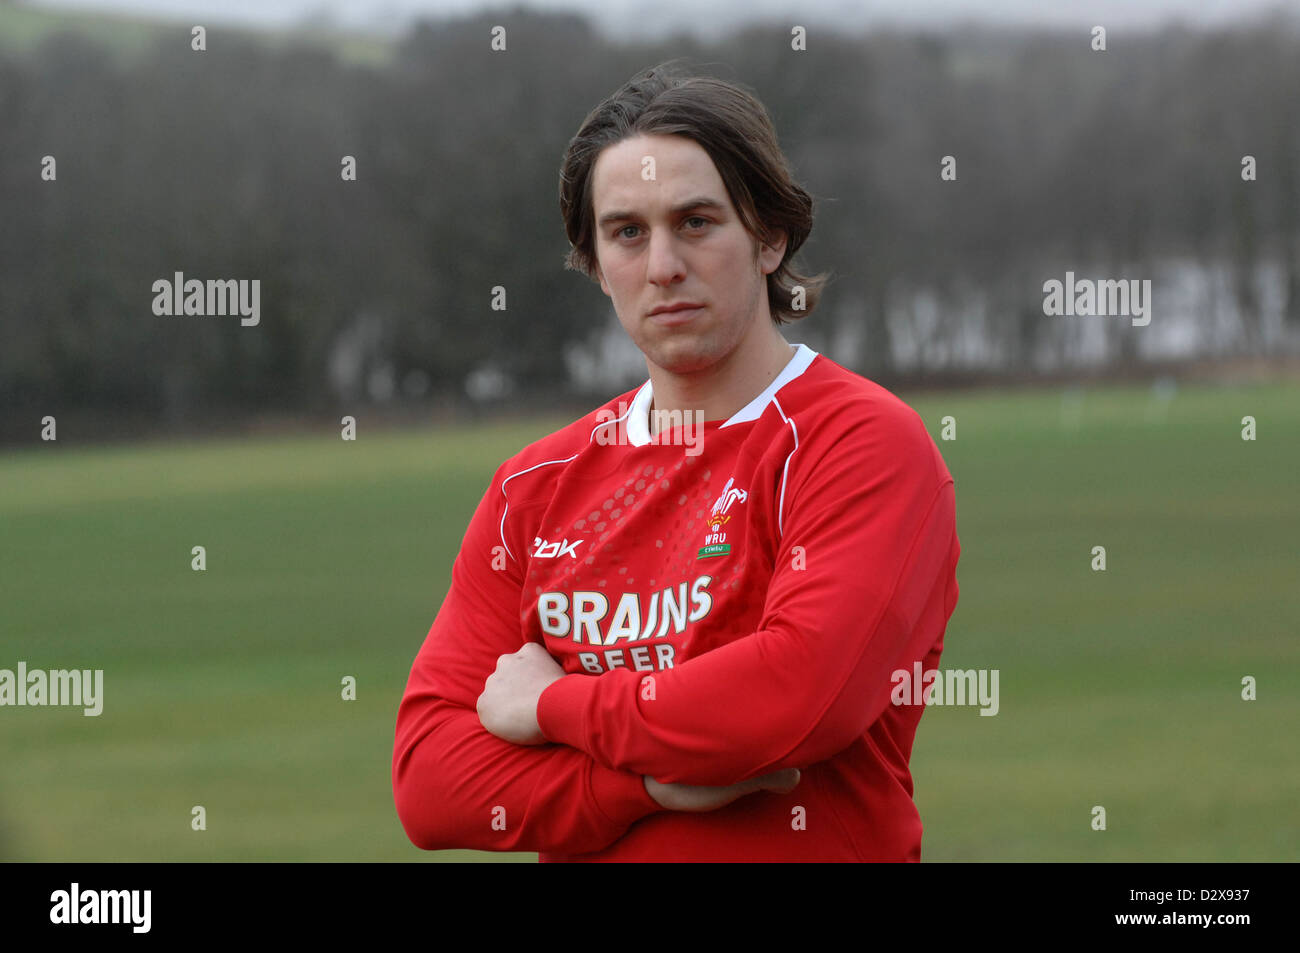 Ryan Jones, named as Captain for Wales' 2008 Six Nations campaign. - Stock Image